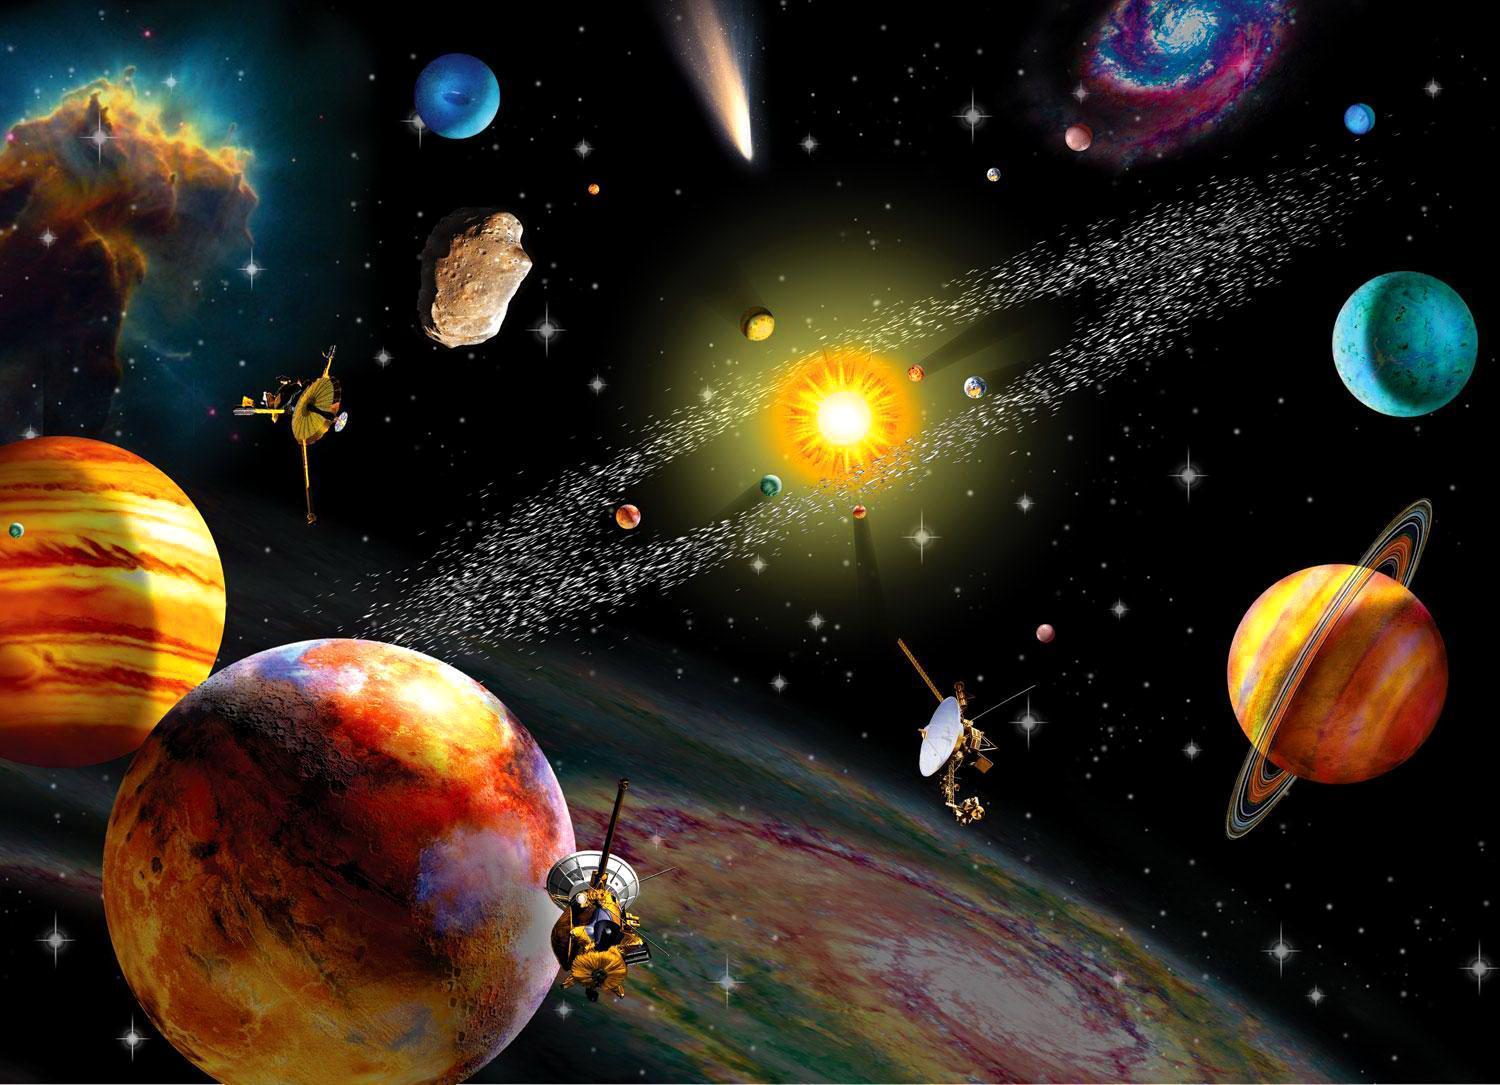 characteristics of the solar system planets Characteristics of the sun and planets the primary components of the solar system are the sun and the planets except for mercury and venus, all the planets have one or more satellites.